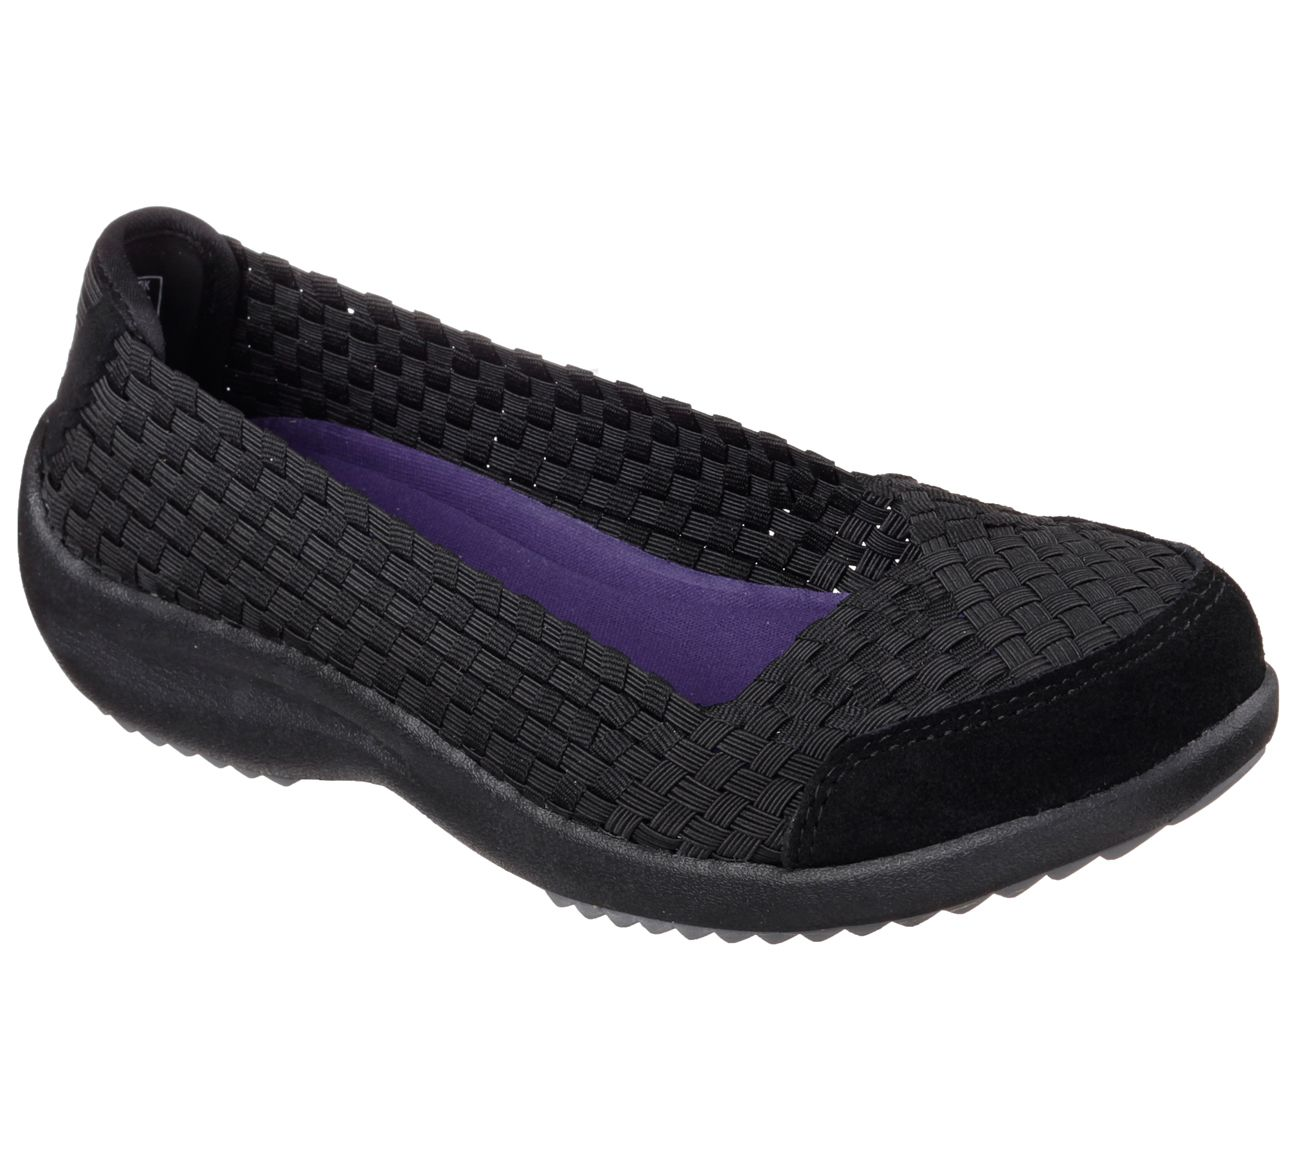 Stretch out and enjoy the style and comfort of the SKECHERS